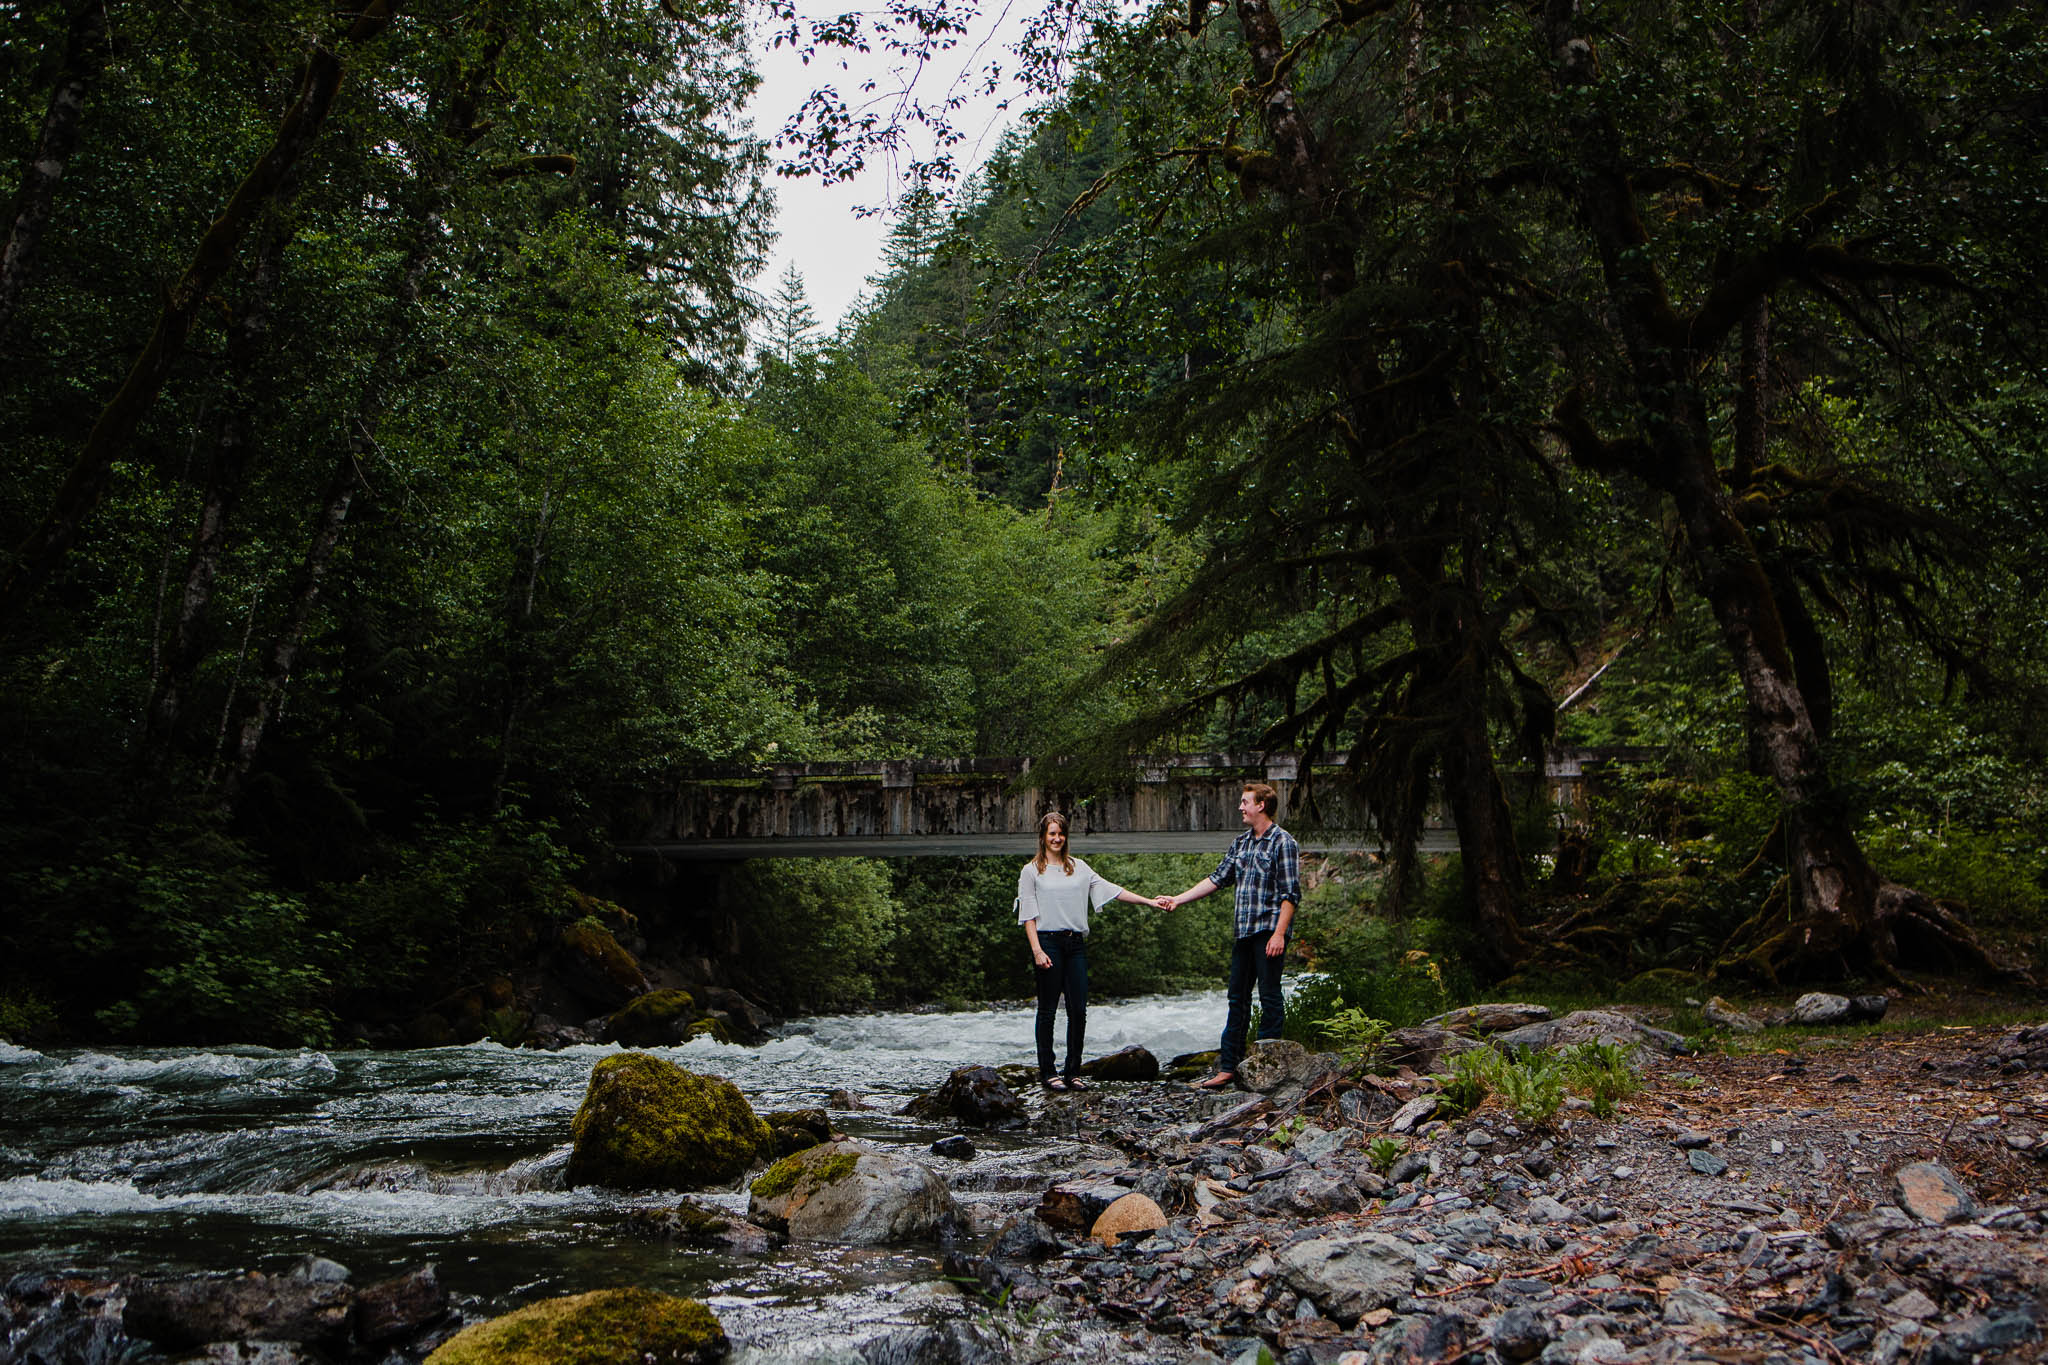 Couple holding hands standing by  Folley Creek near Folley lake in Chilliwack British Columbia during outdoor engagement photography session in the mountains with Mimsical Photography.    Outdoor adventure photographer based in Langley, British Columbia. Real fun engagement photos for outdoor enthusiasts in the lower mainland